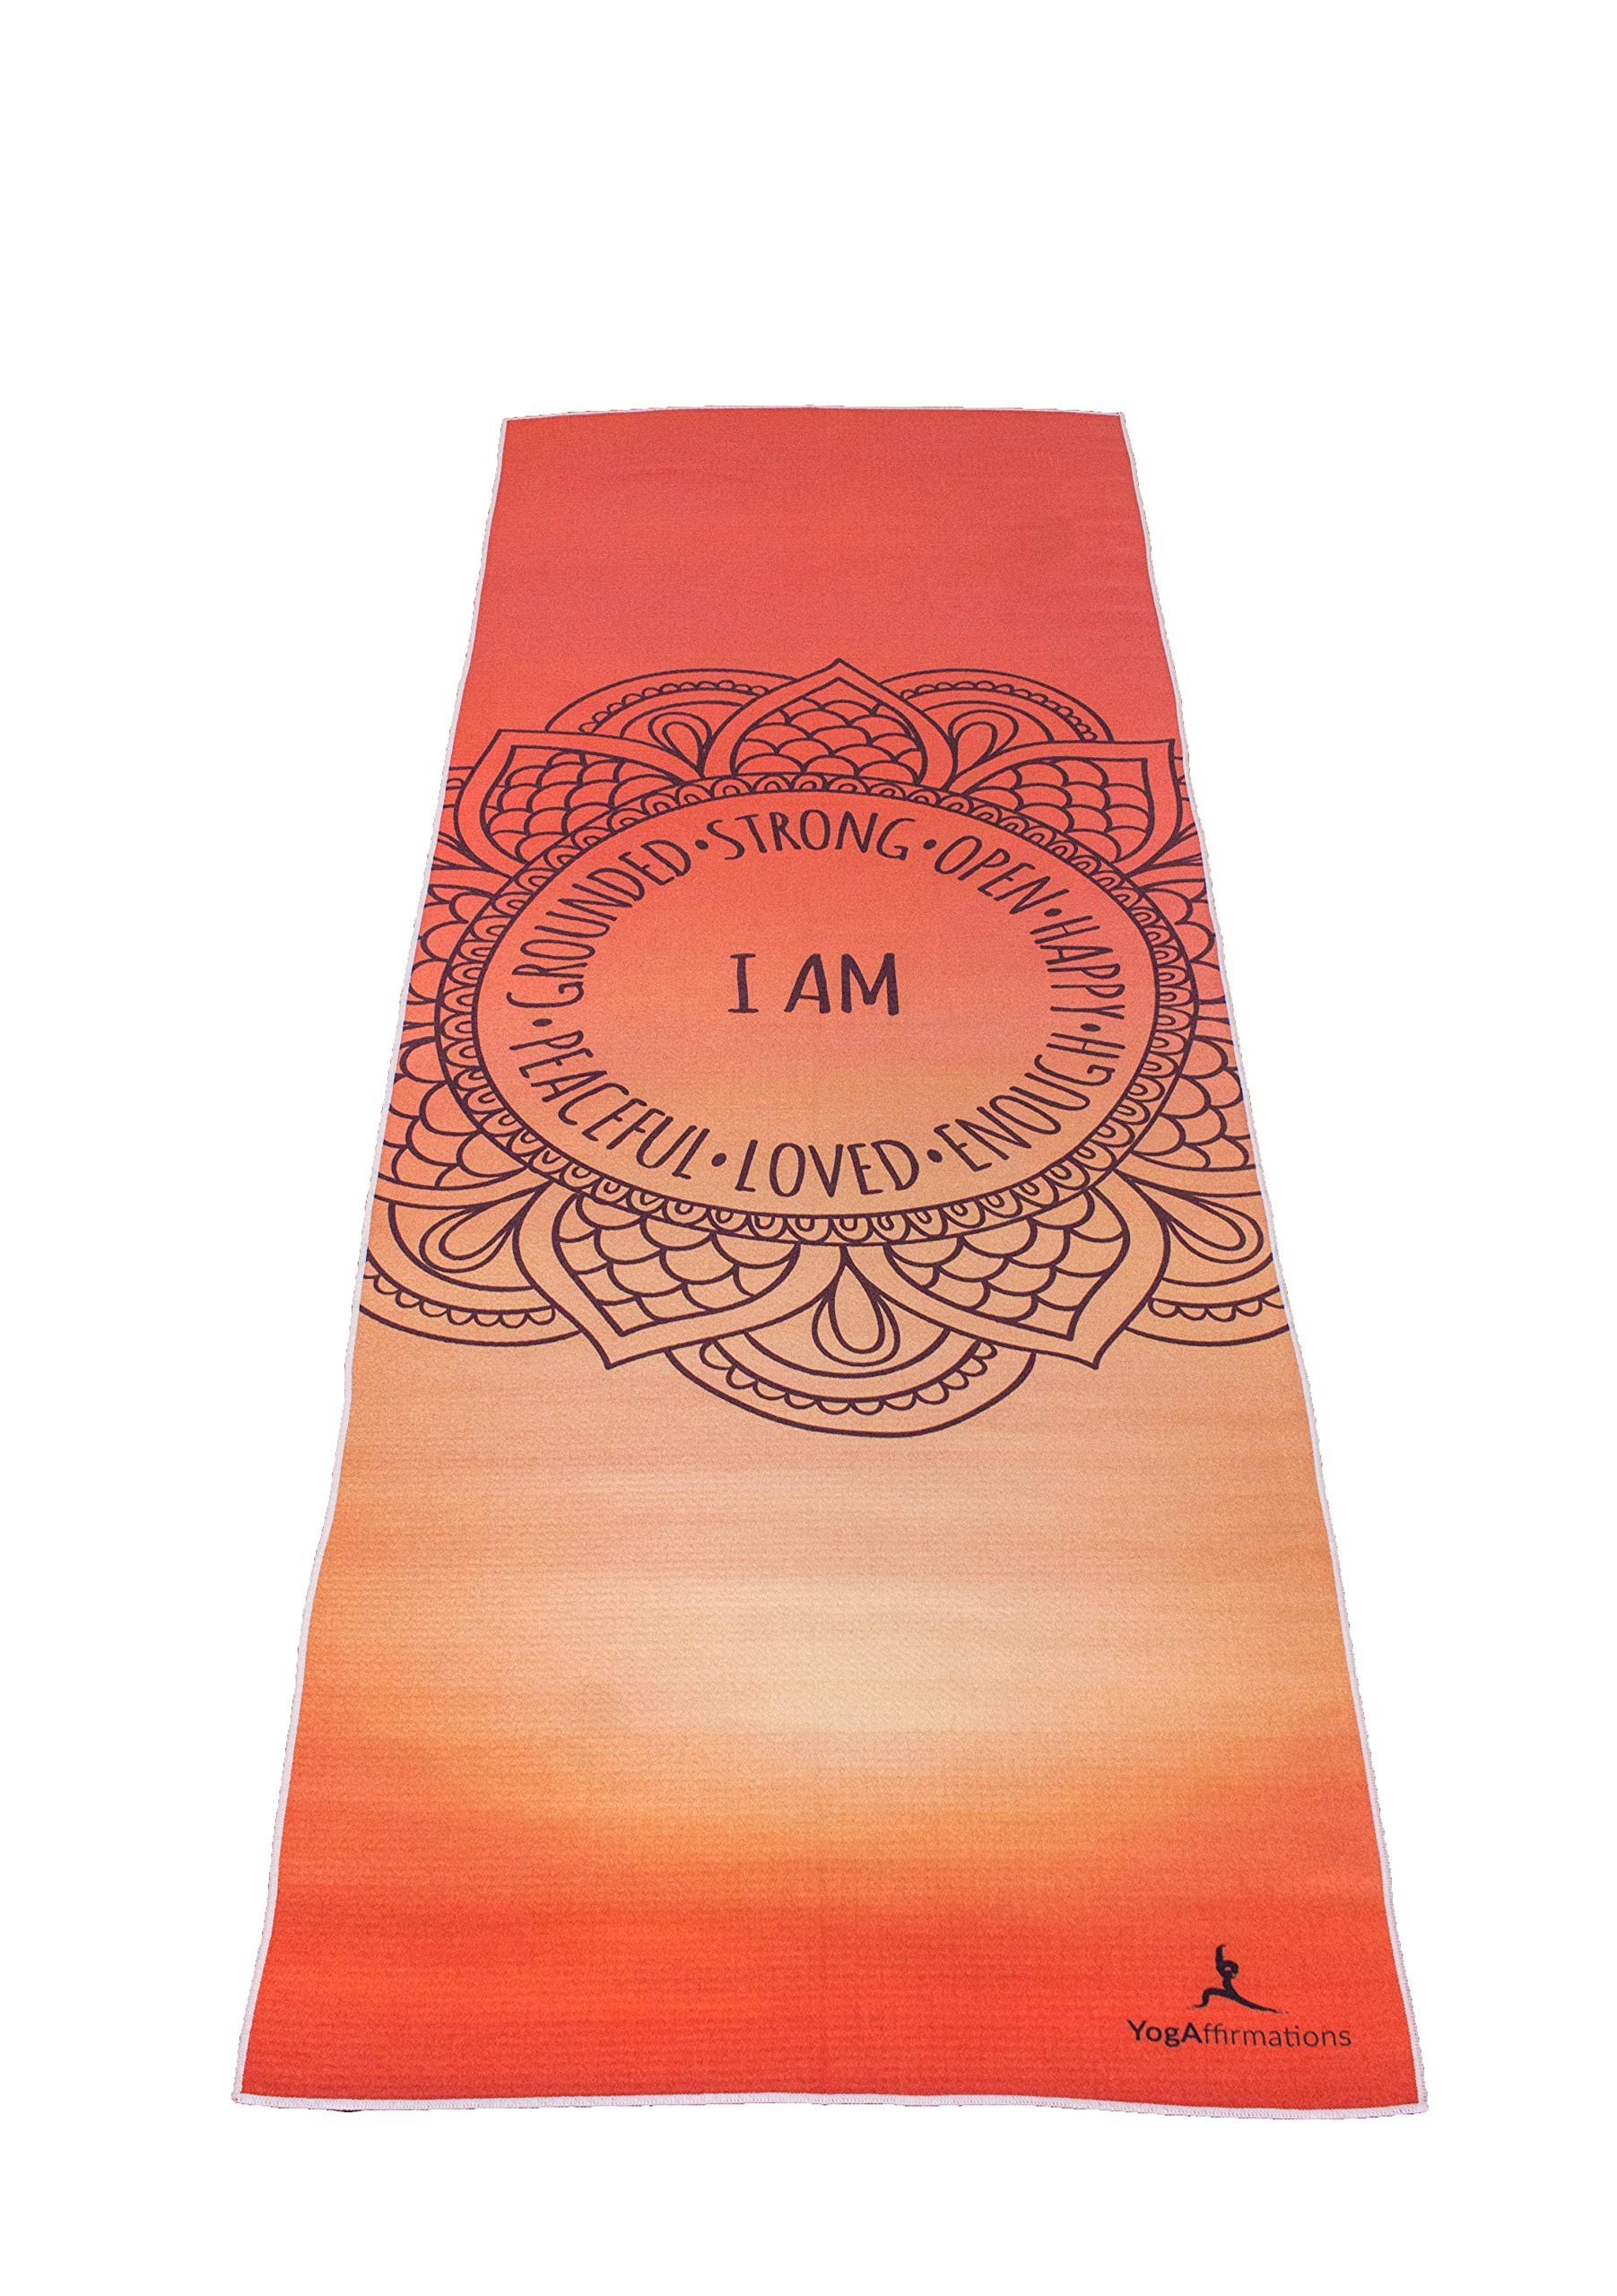 Premium Quality Yoga Mat Towel by YogAffirmations - Non Slip, Silicone Dots, Ultra Soft Microfiber, Wicking Sweat Absorbent - Great for Pilates, Meditation, Hot Yoga - 24'' x 72'' Orange Yoga Towel